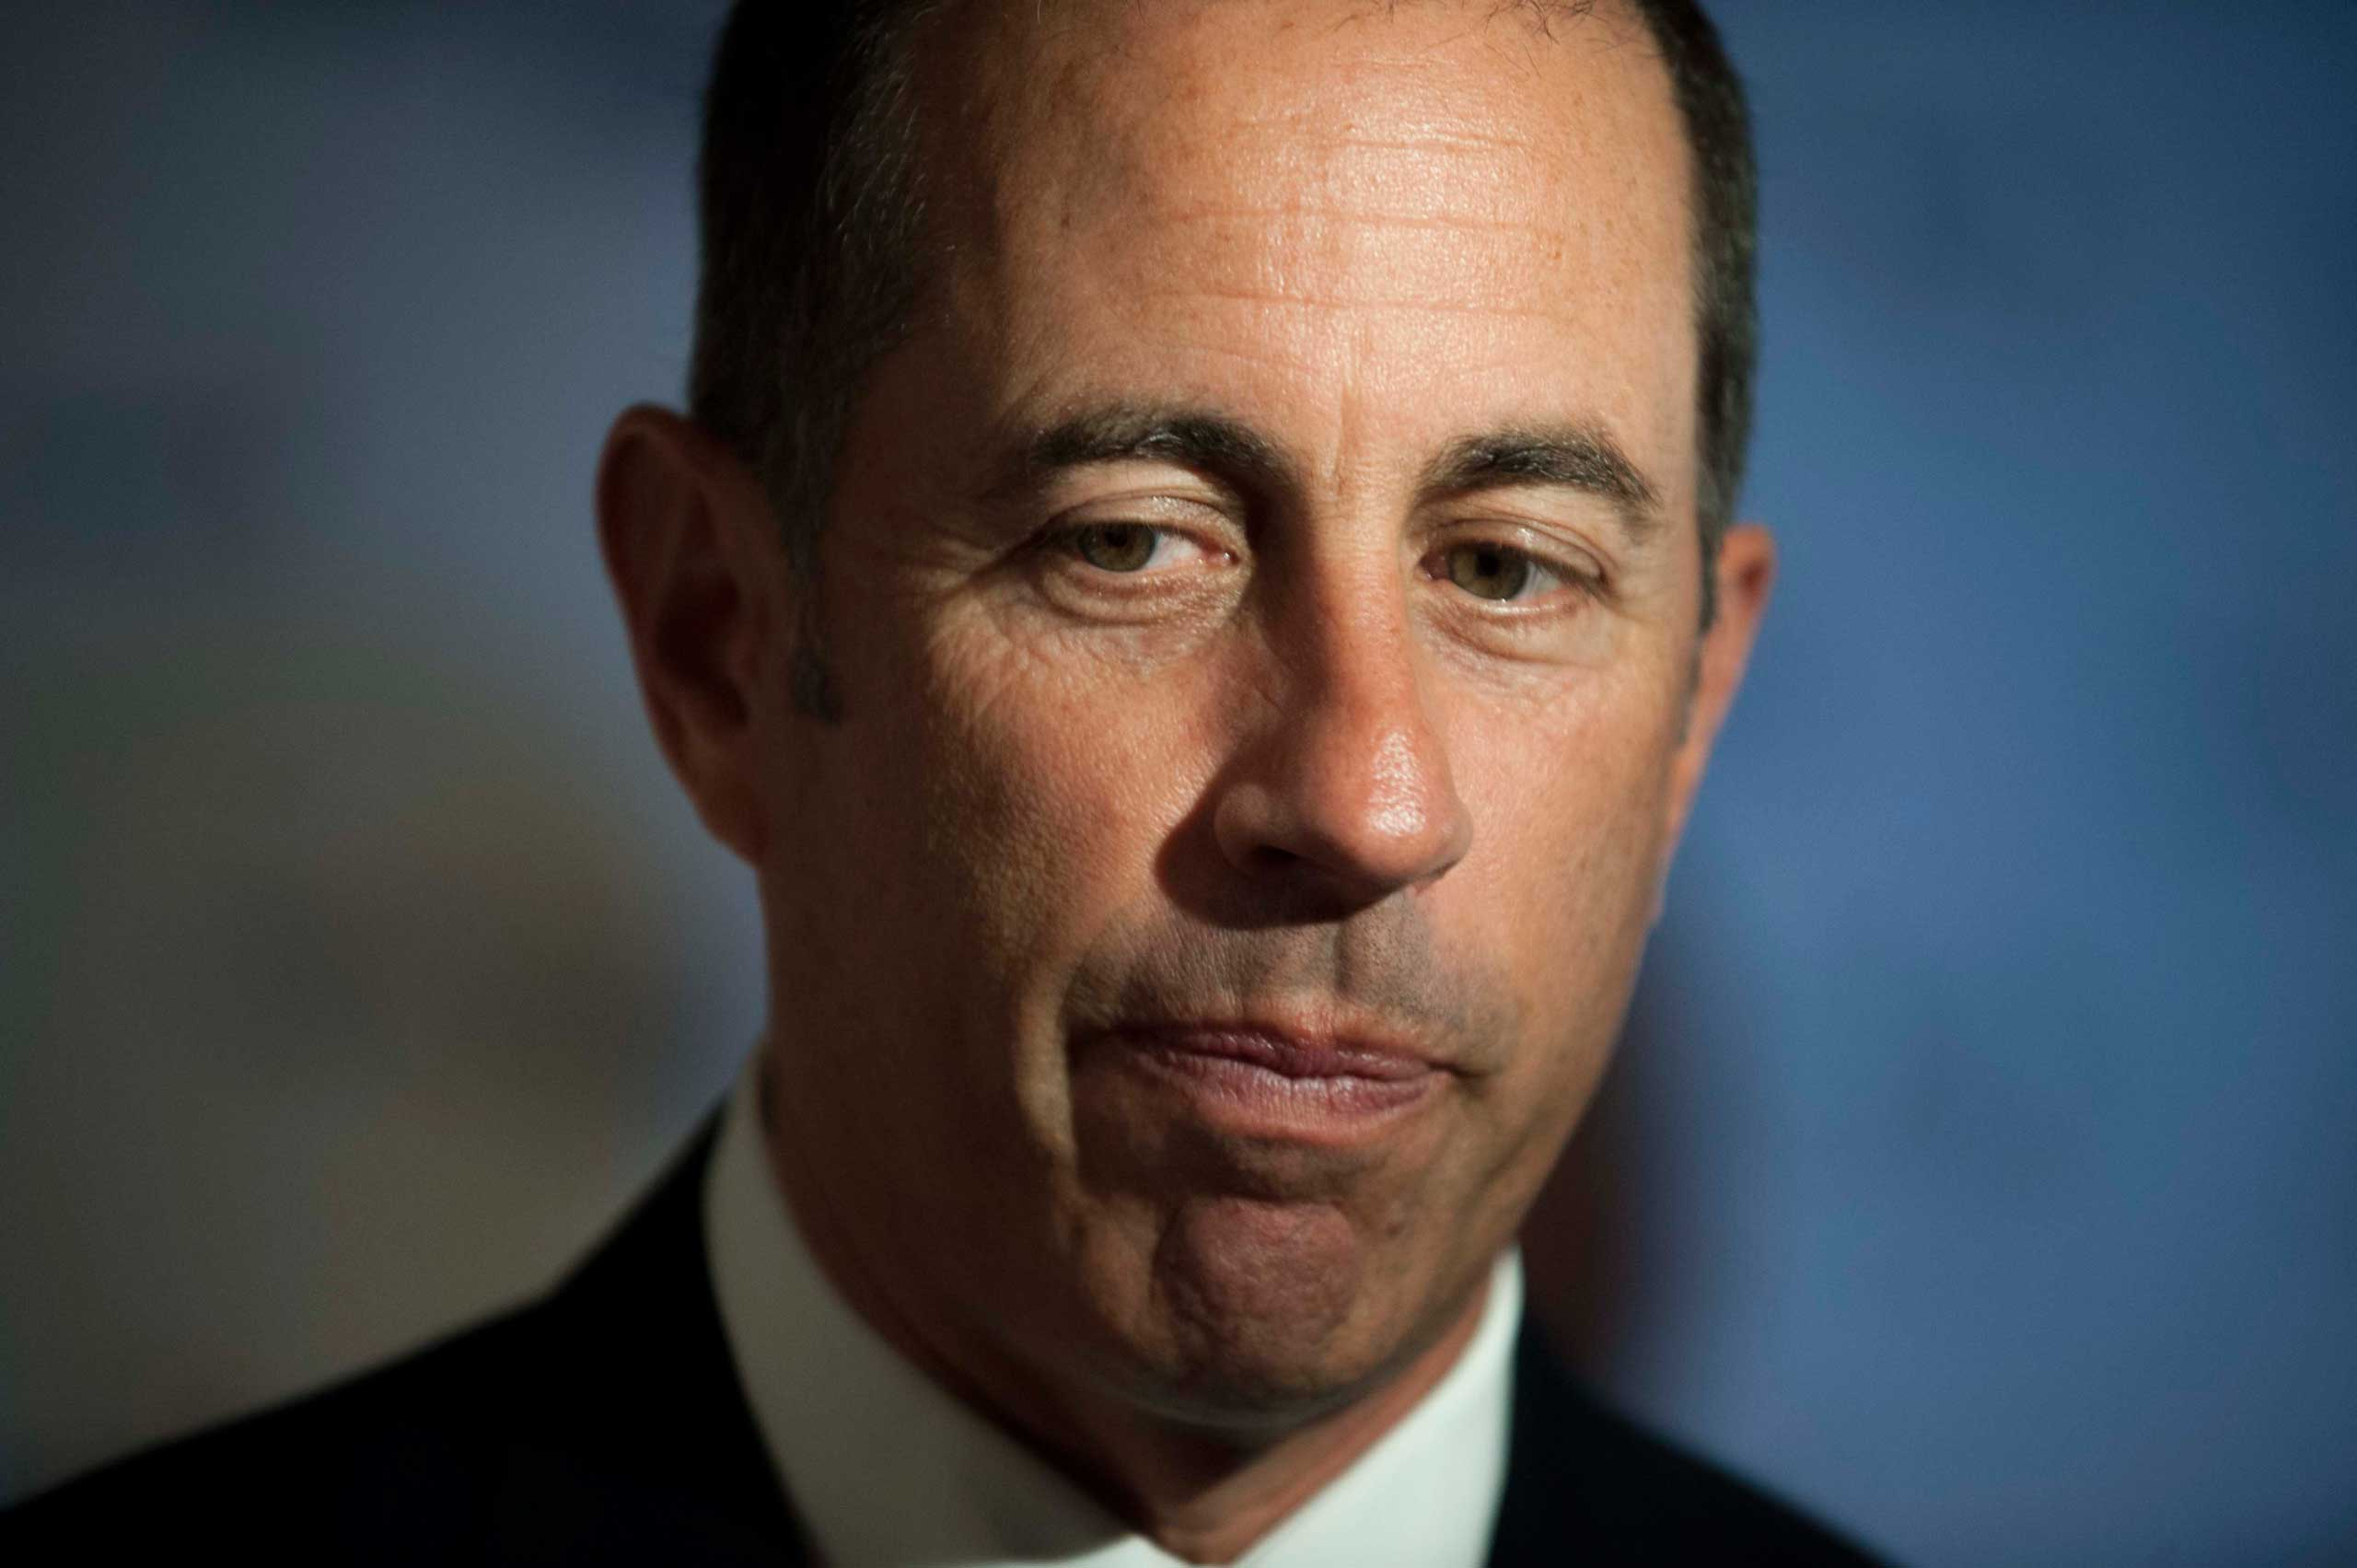 Jerry Seinfeld pauses as he is interviewed on the red carpet at the Kennedy Center for the Performing Arts for the Mark Twain Prize for American Humor, Oct. 19, 2014, in Washington.